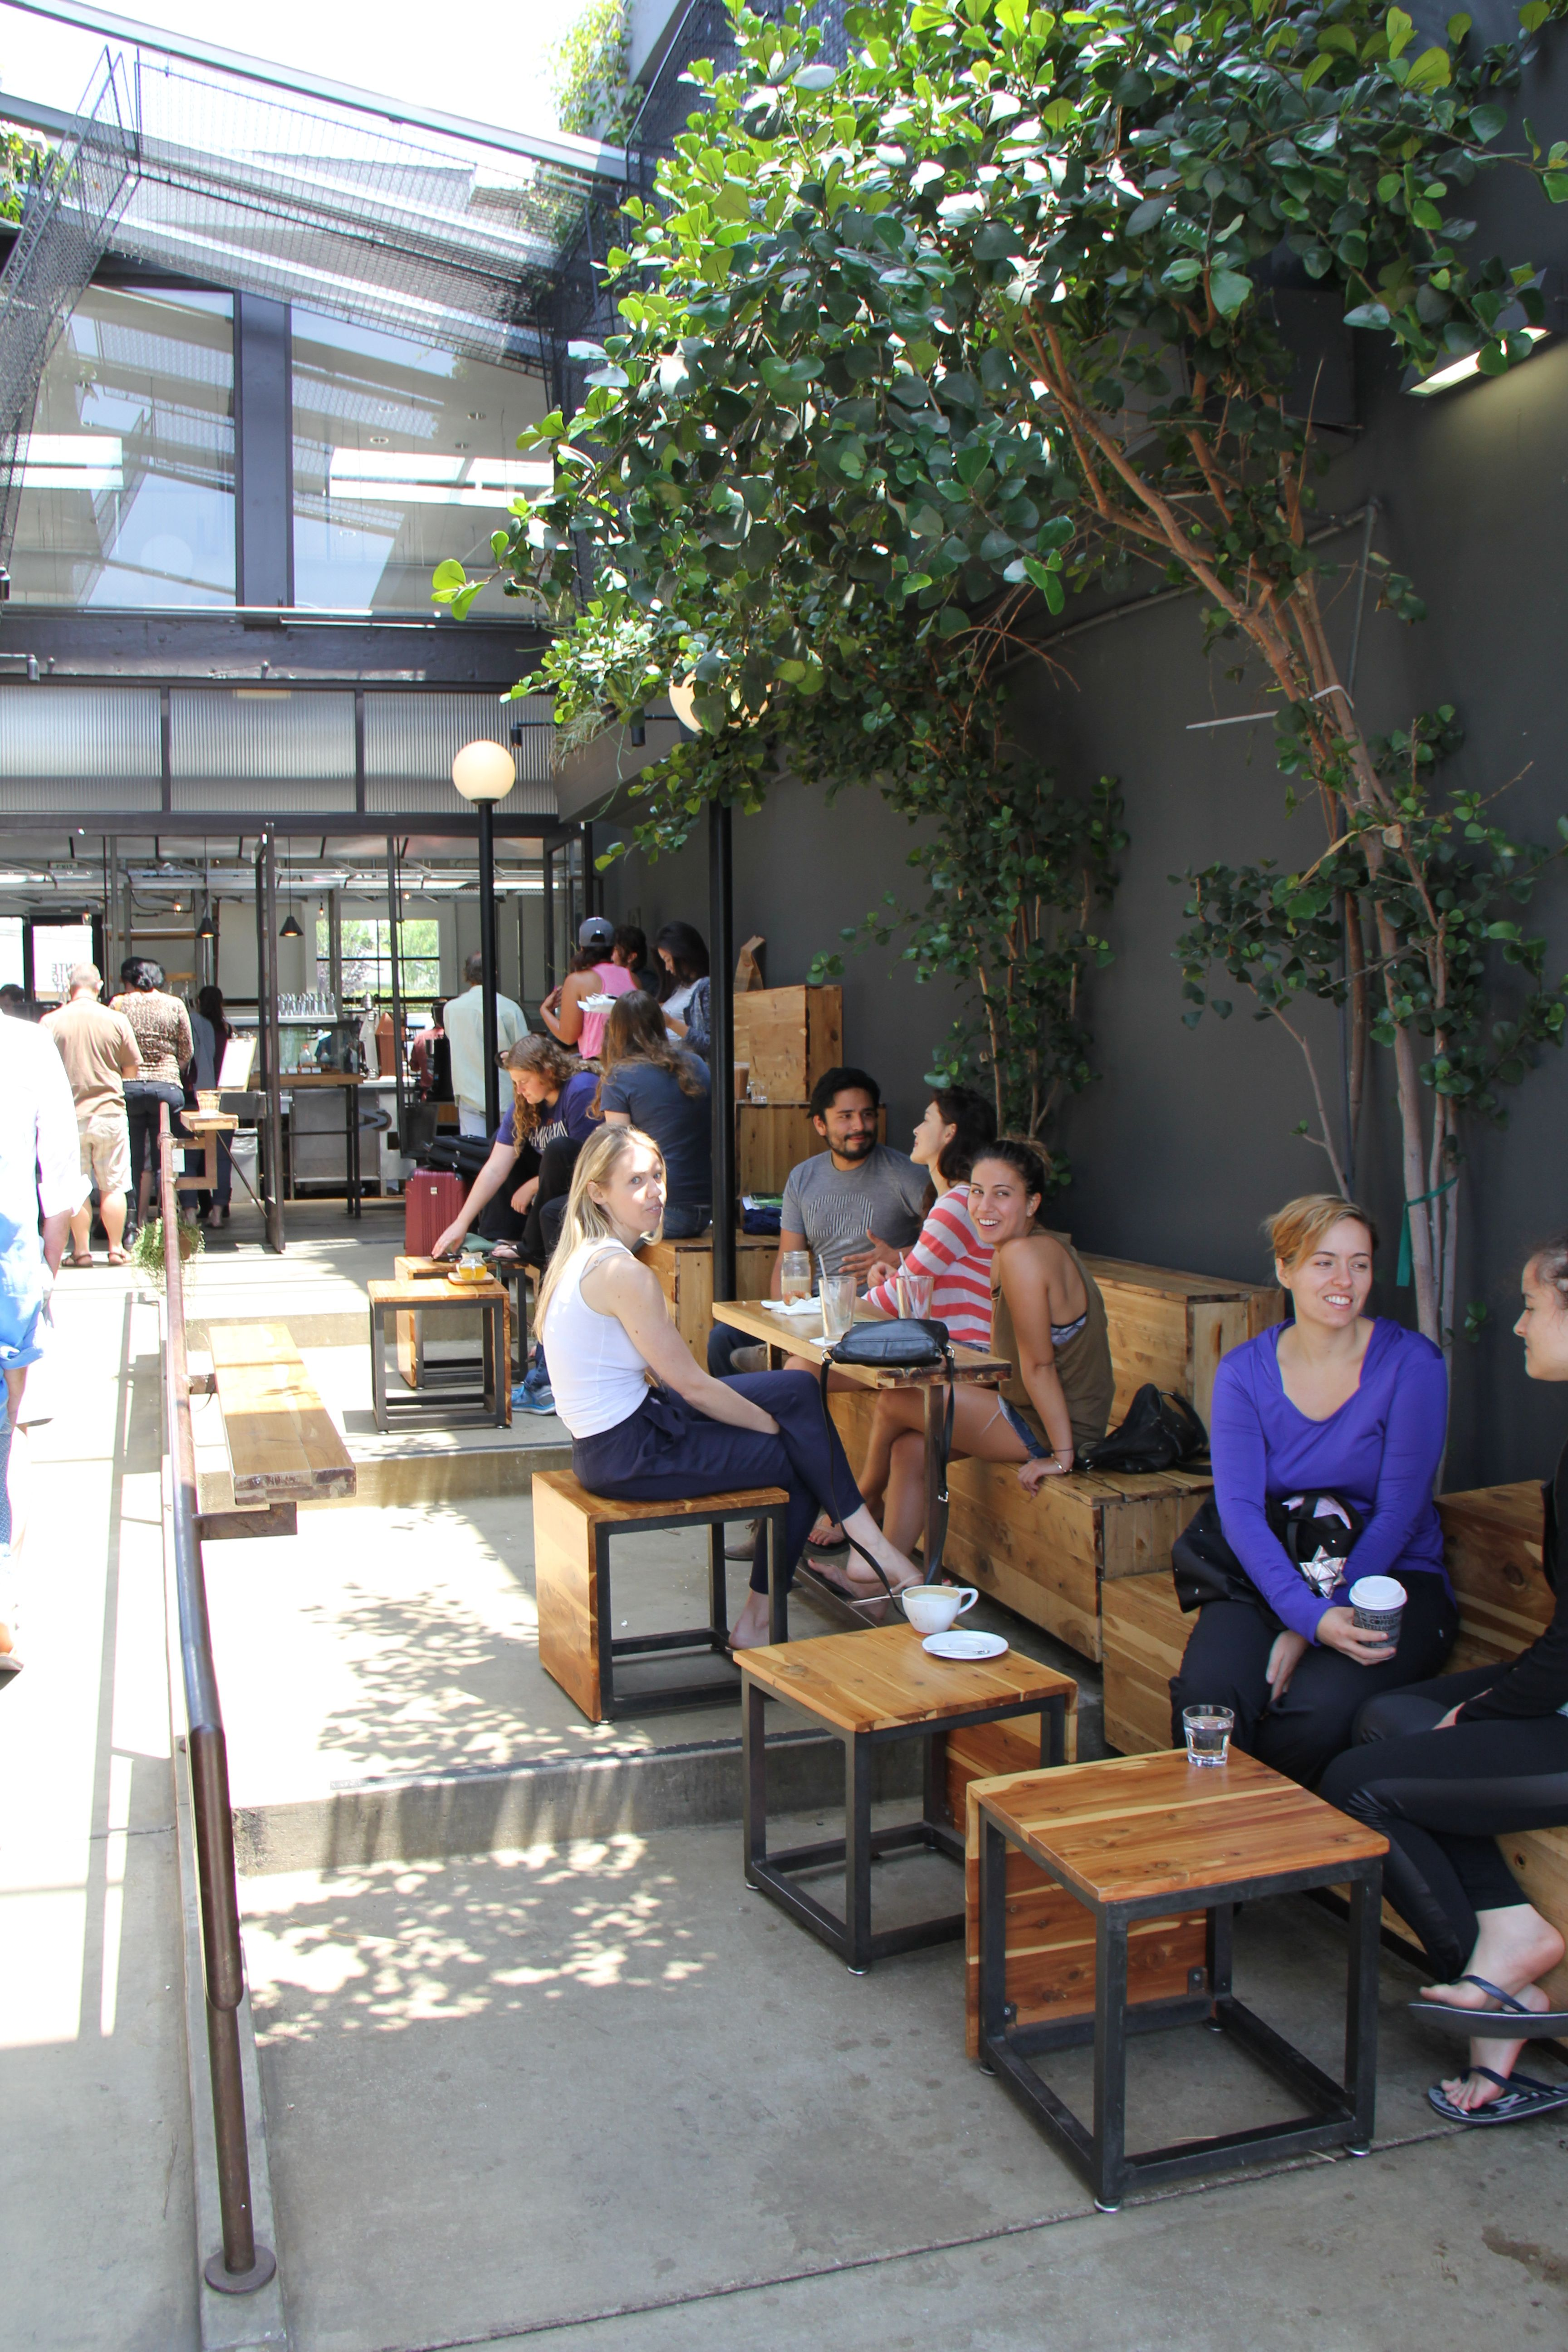 Wohnzimmer Cafe Bar Outdoor Coffee Shop Abbot Kinney Dining With Nature